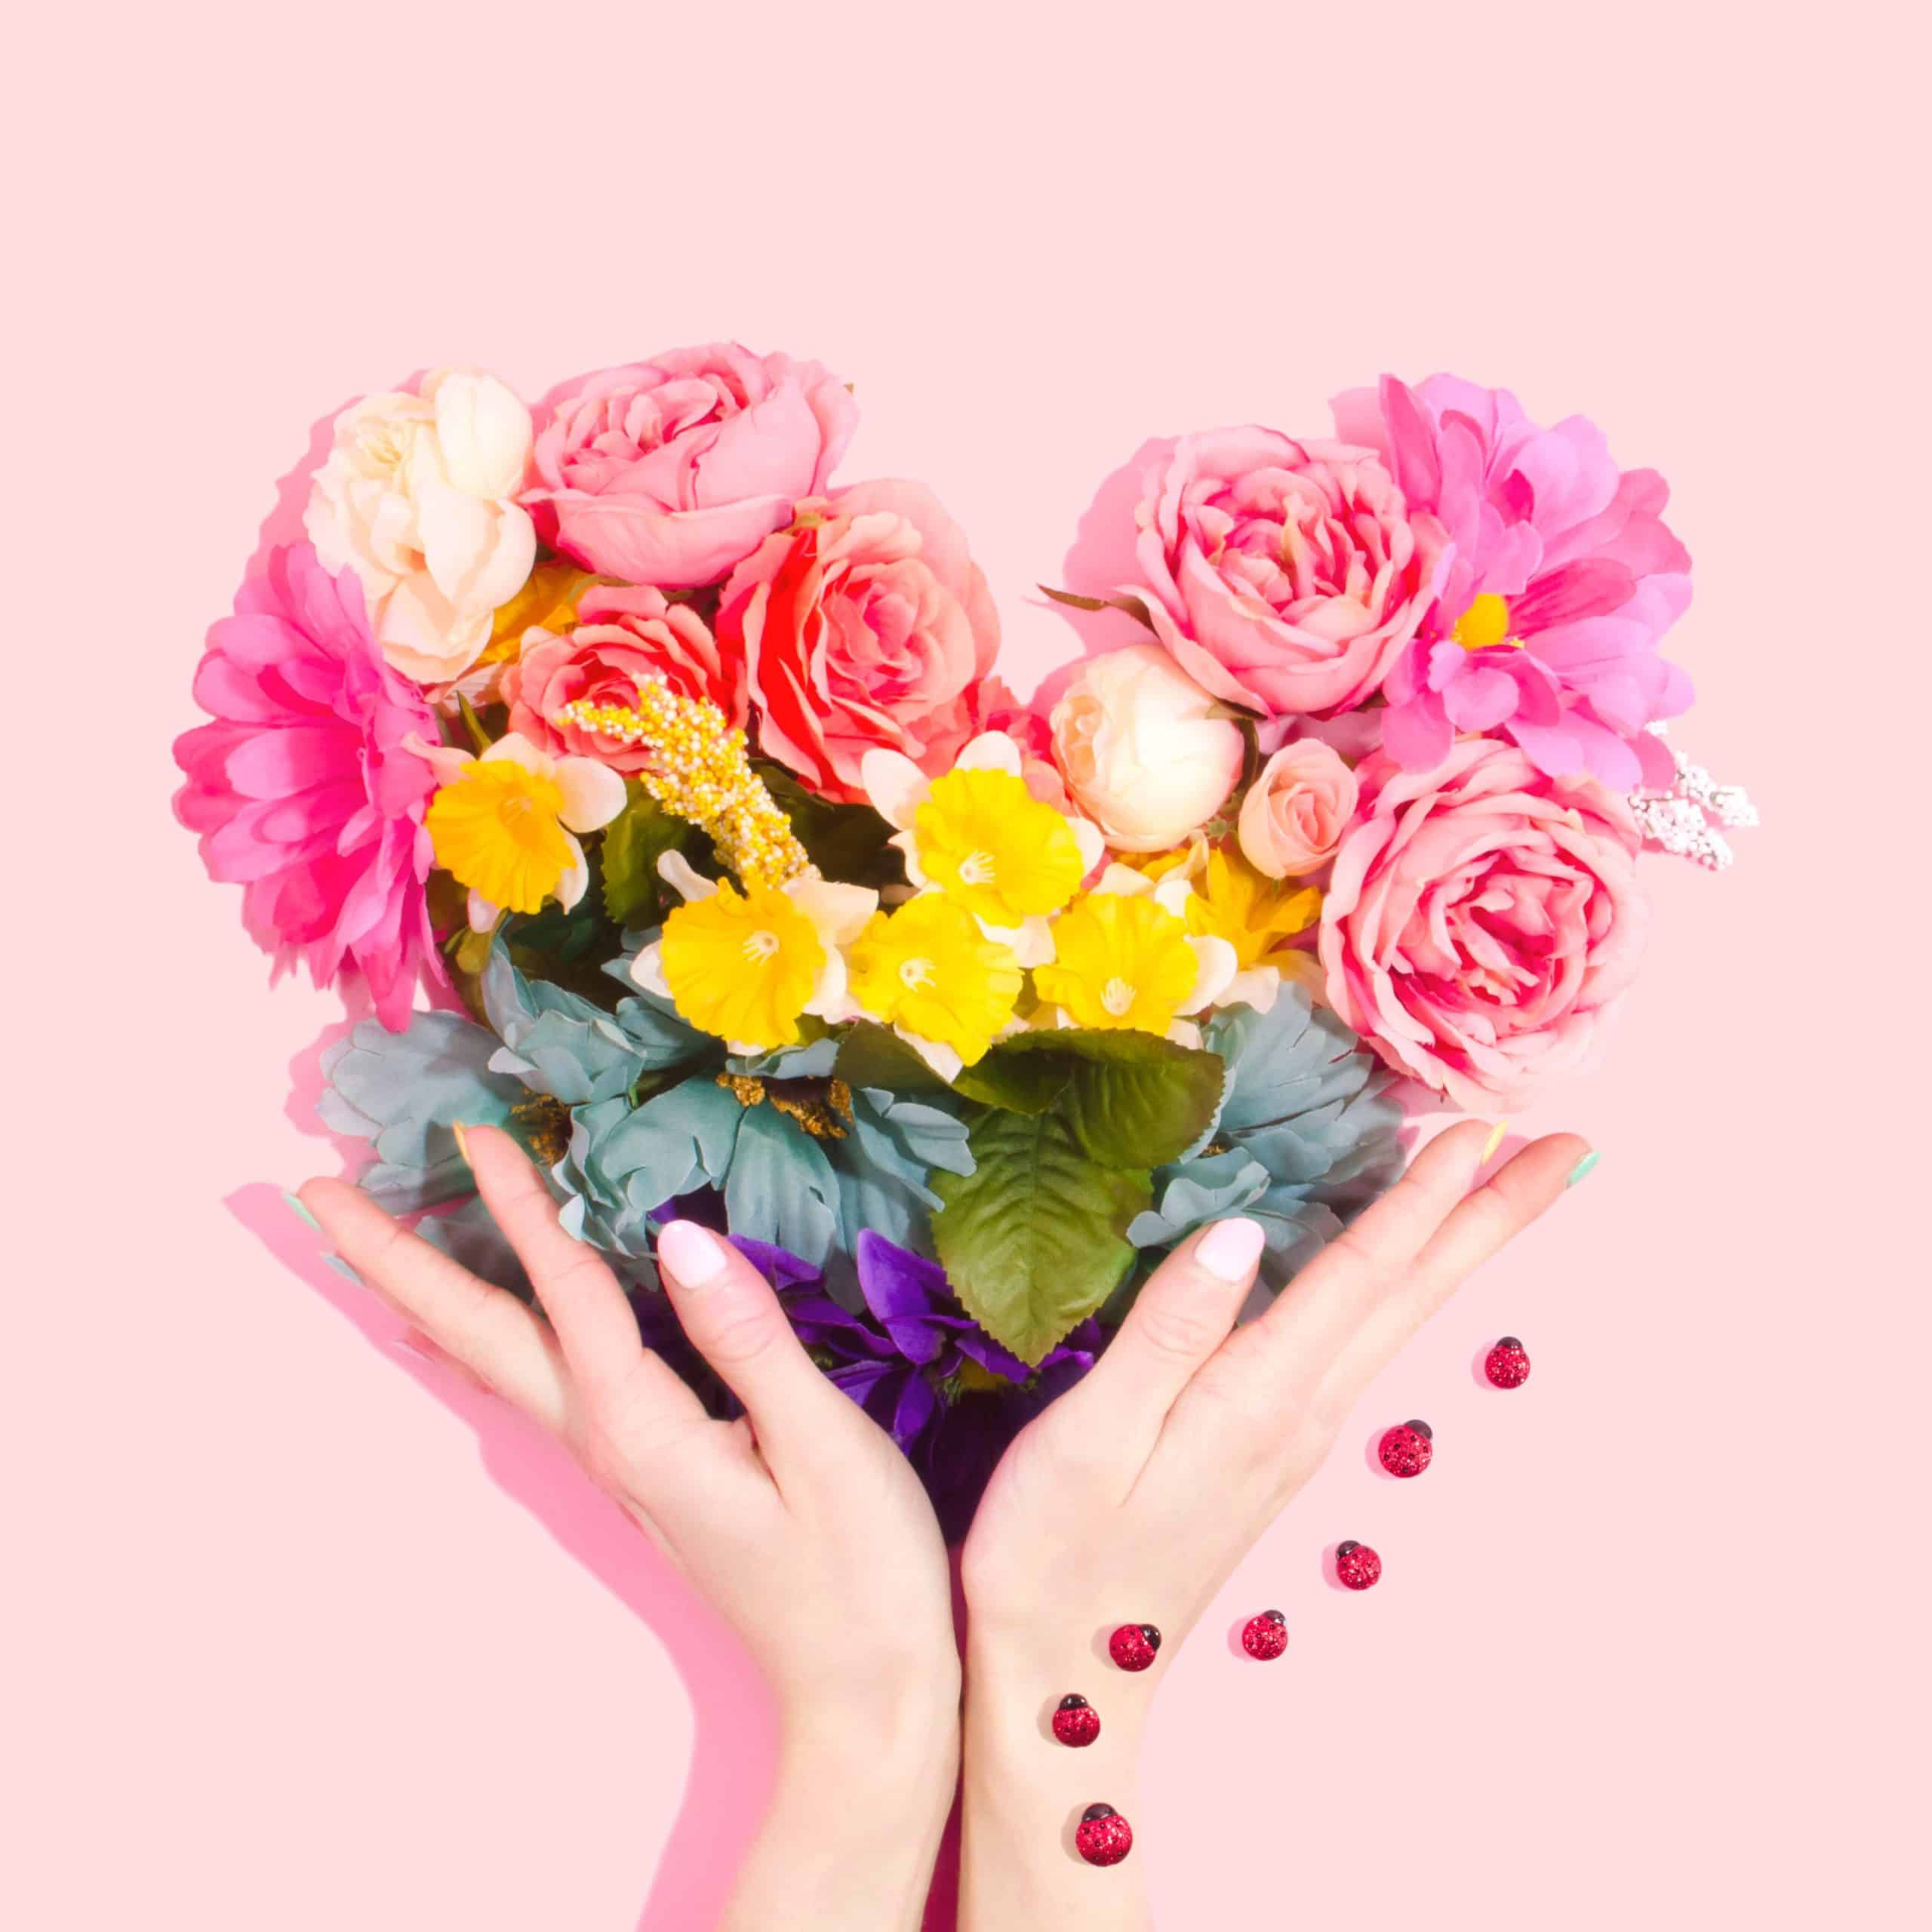 Sending Flowers And Plants As A Gift